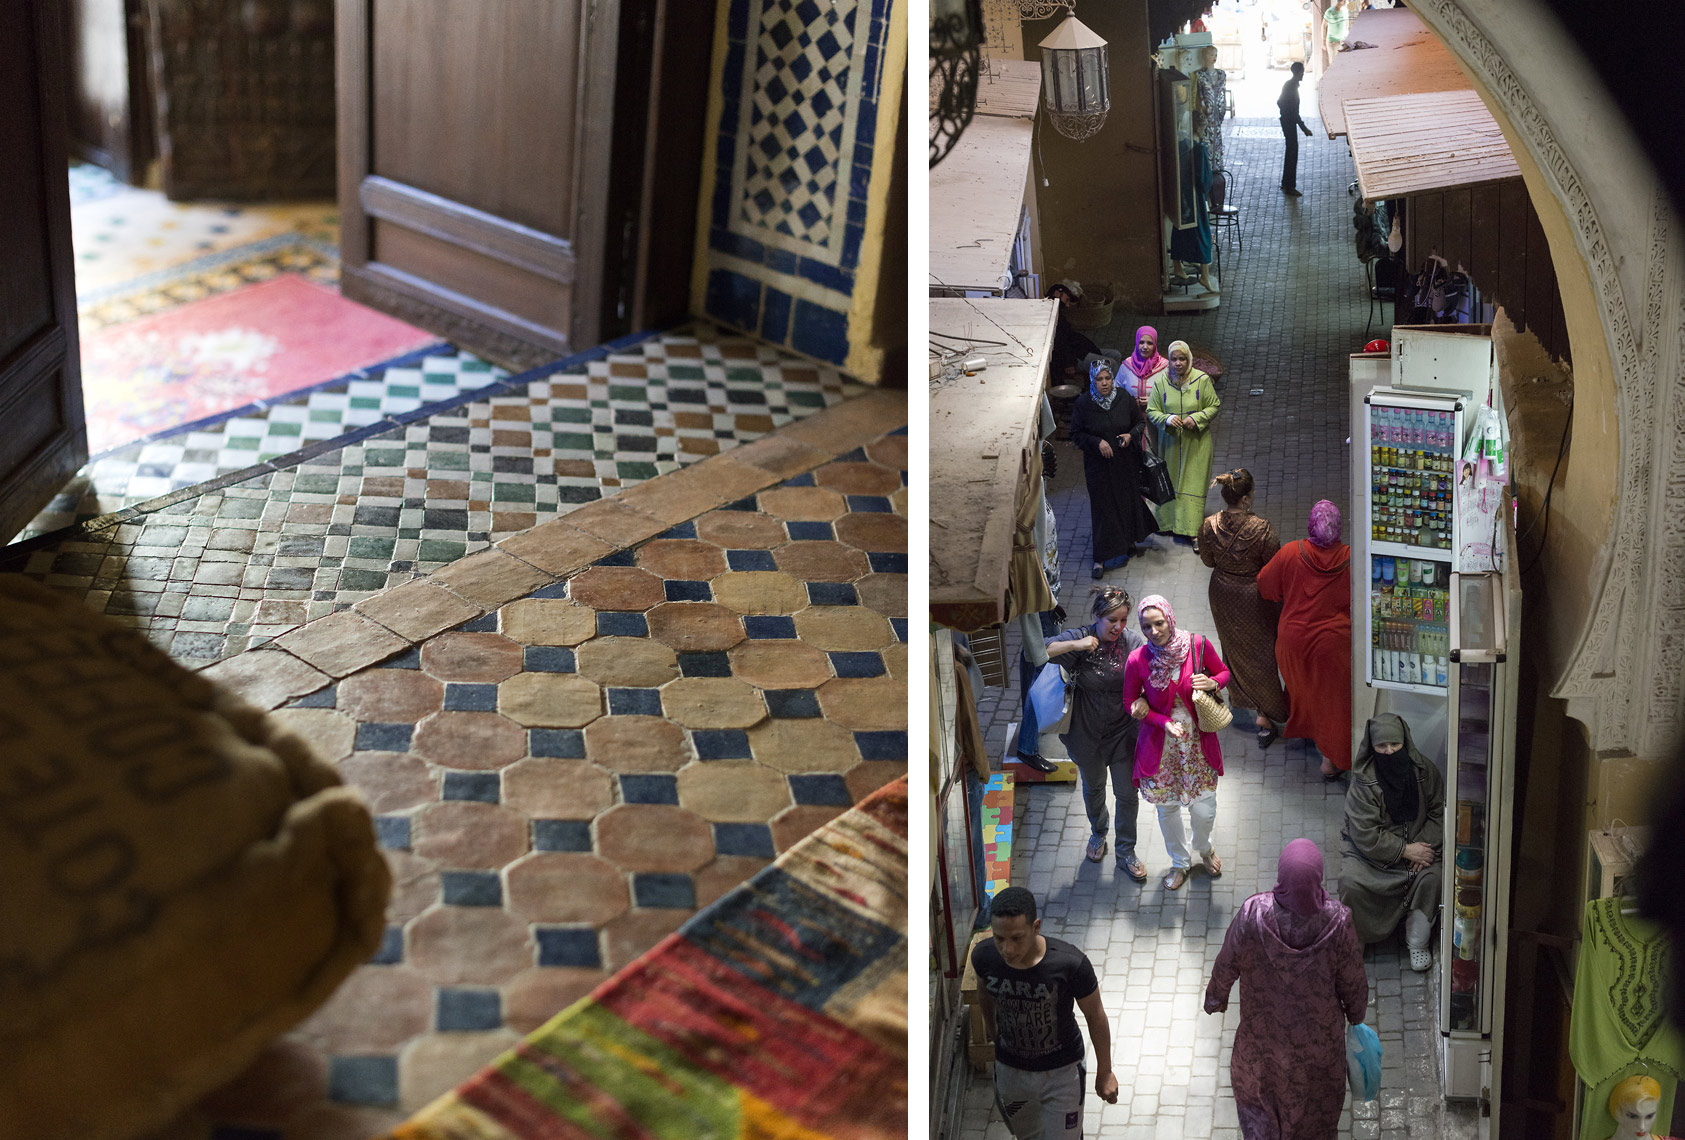 Riad-floor-and-Souk